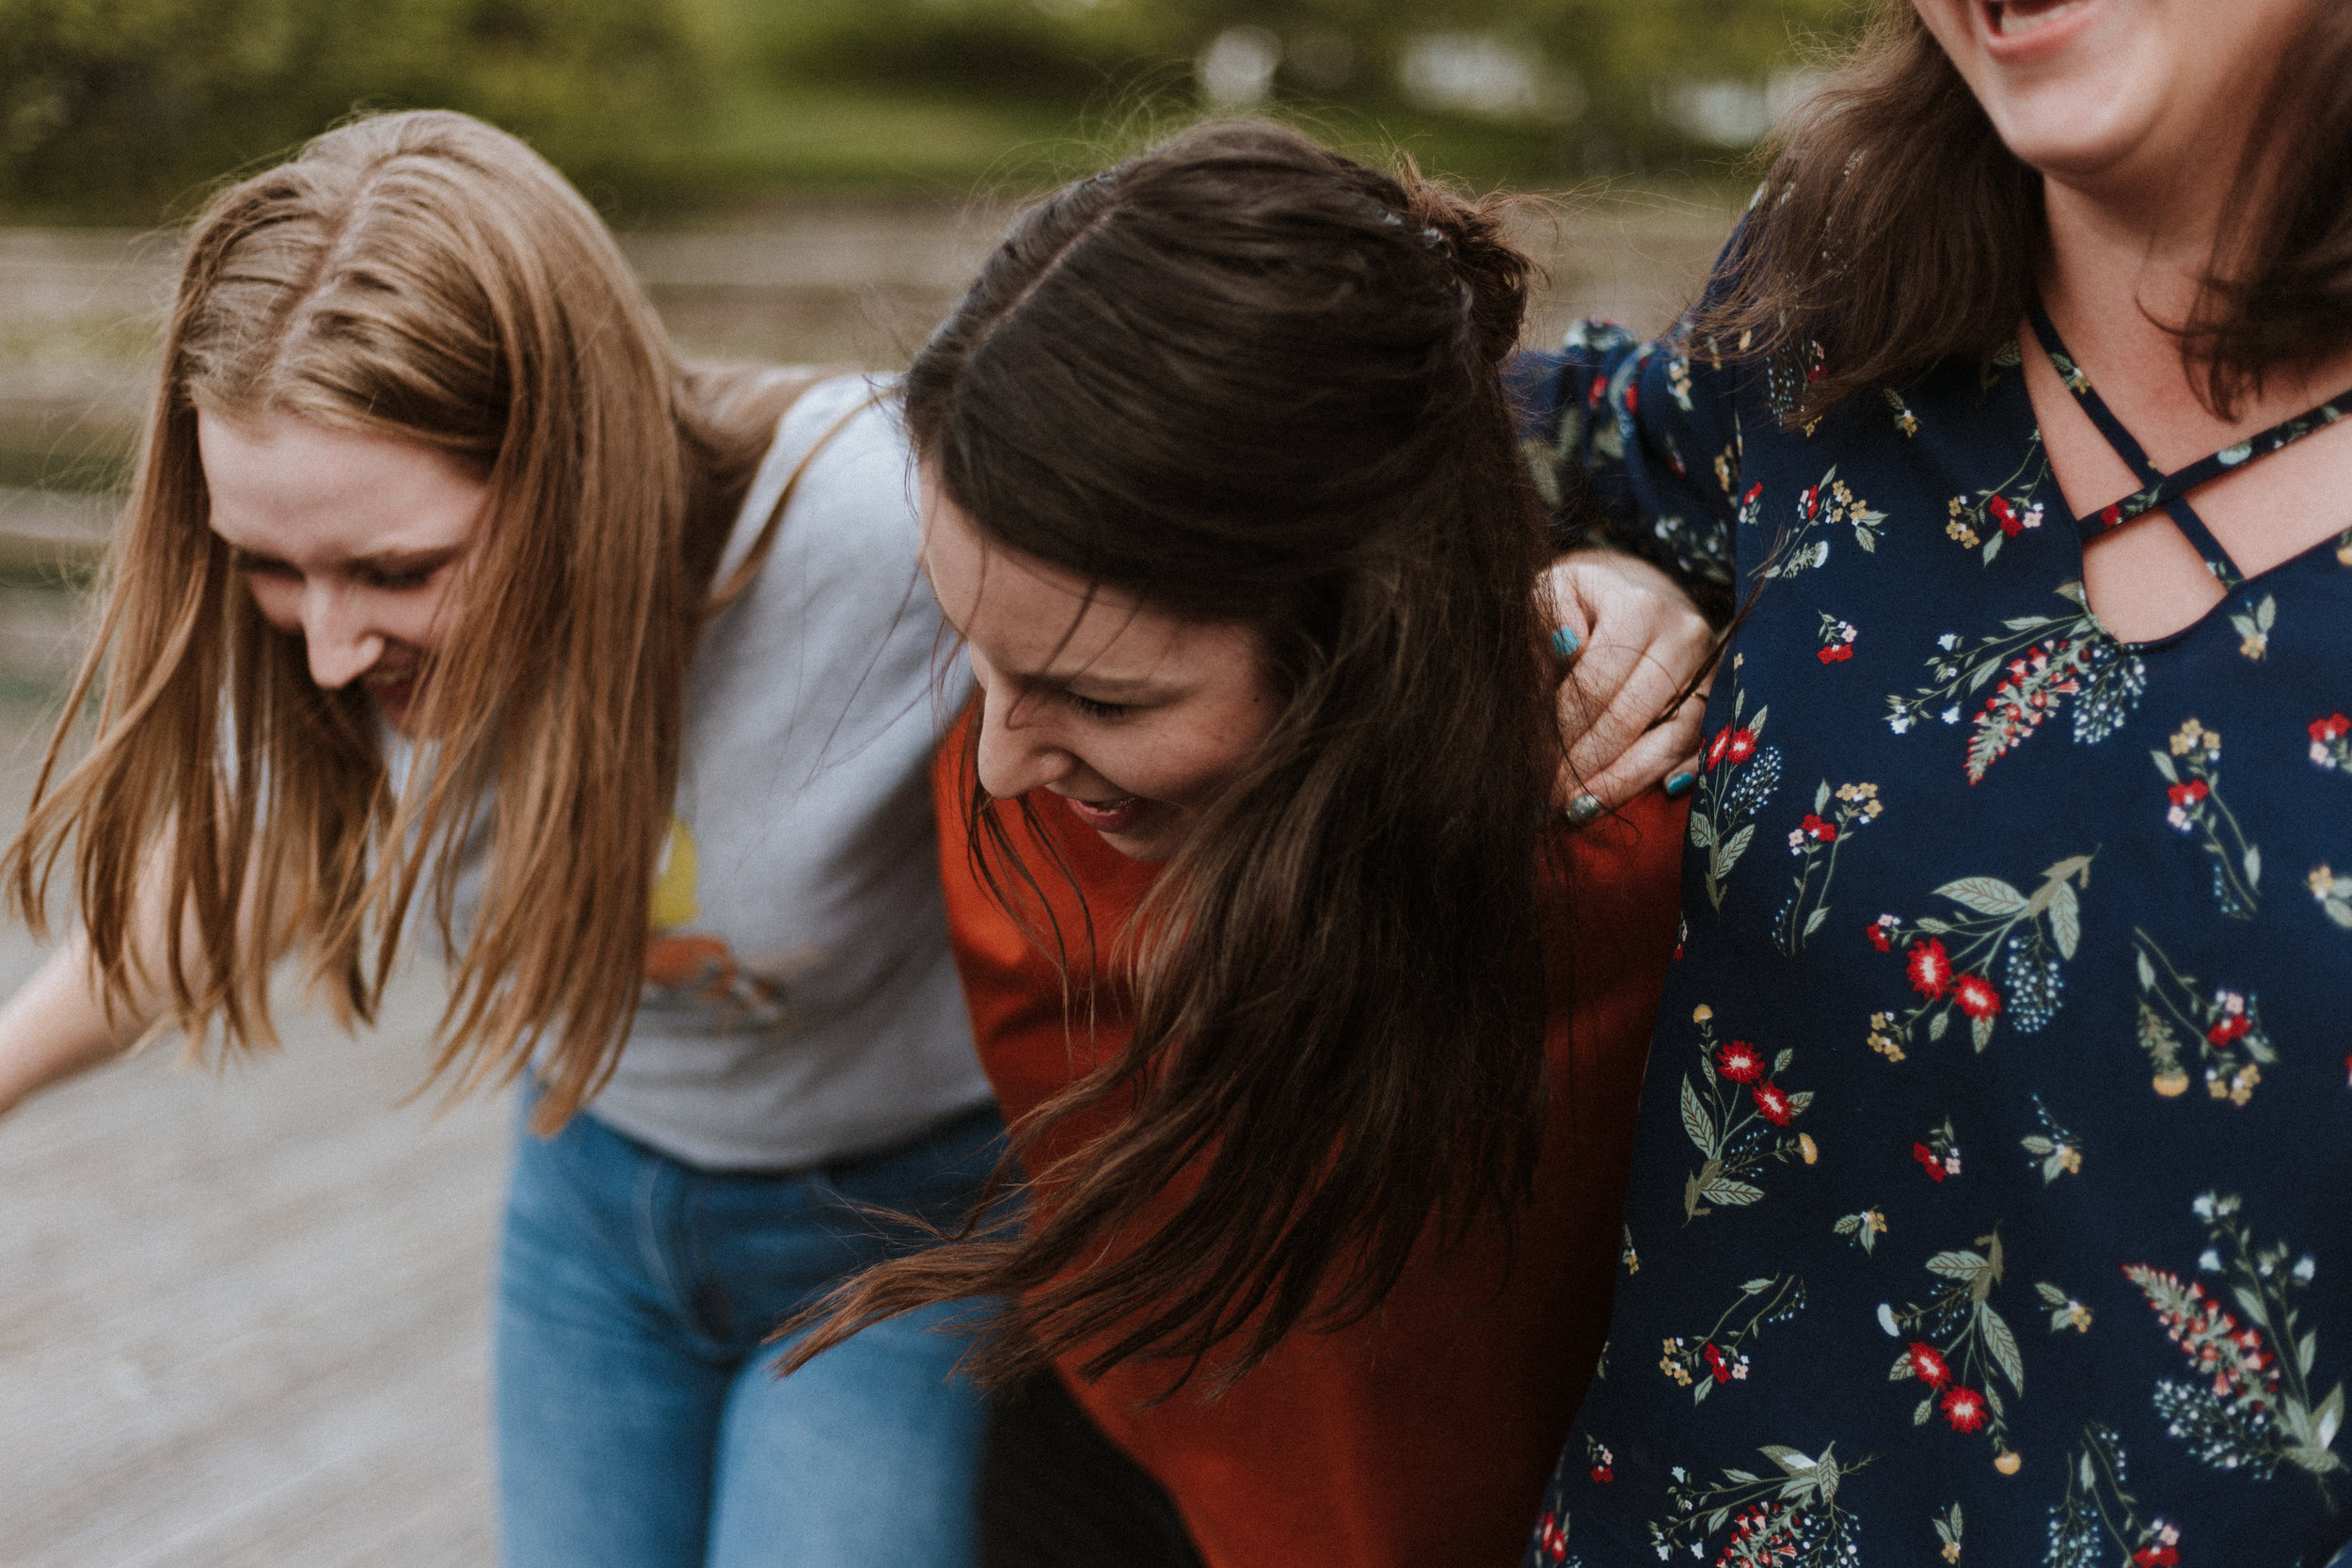 Life Groups - No matter where you come from or the stage of life your in, there's a group for you. Join a Life Group and experience real relationships and real community. Watch as your faith grows and you see God in a whole new way!